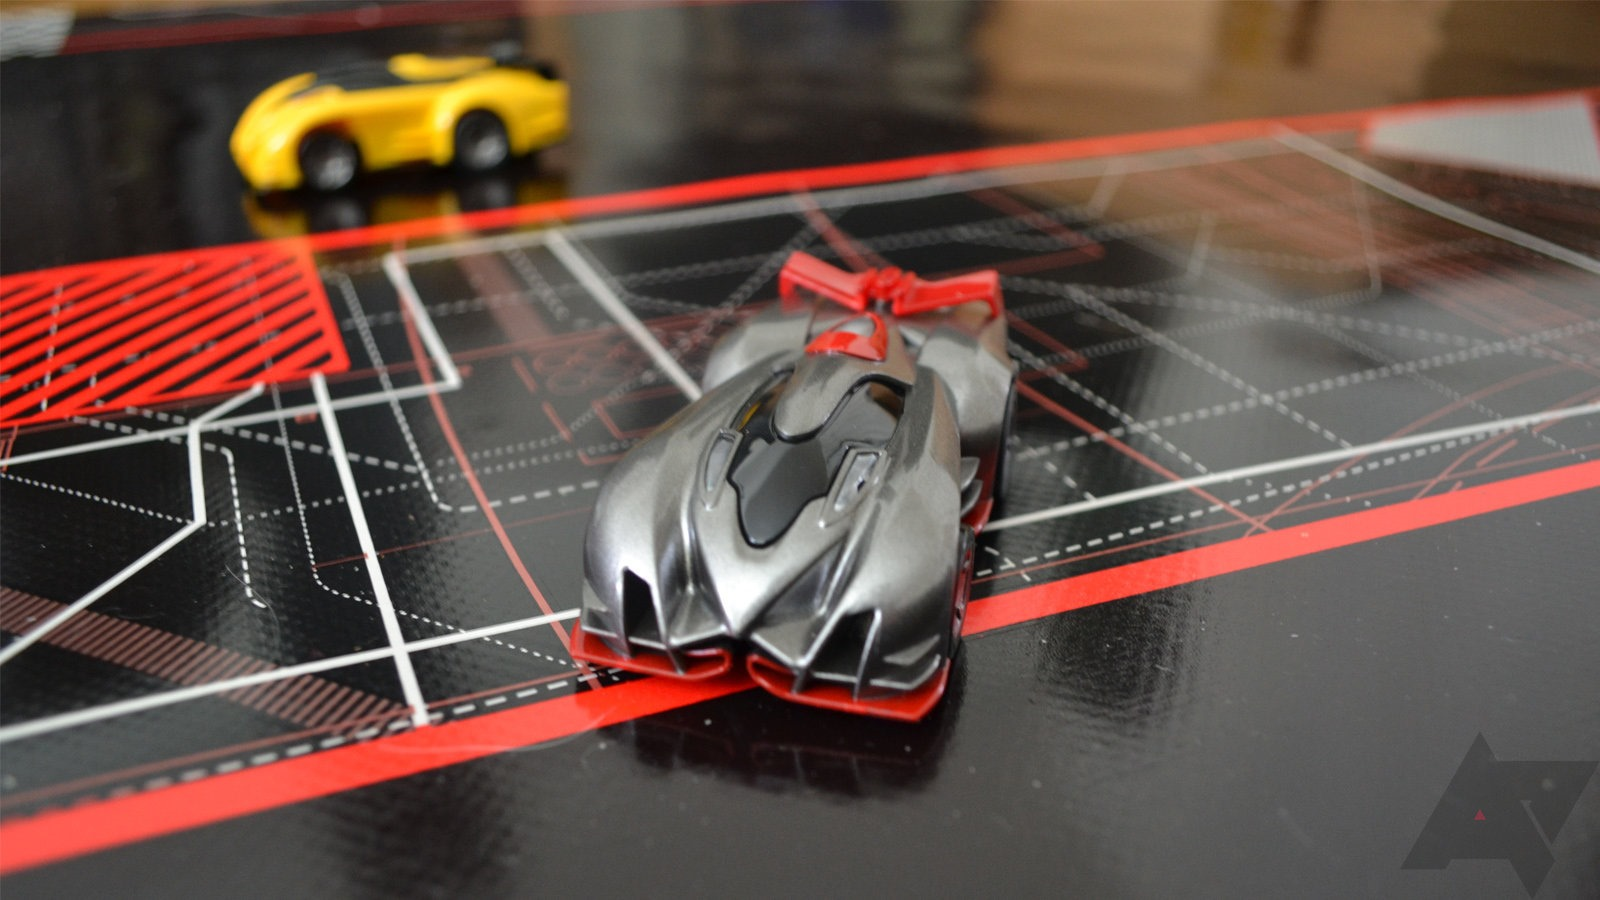 anki drive seeks to bring basic artificial intelligence into the real world making for a unique gaming experience should you consider dropping cash on